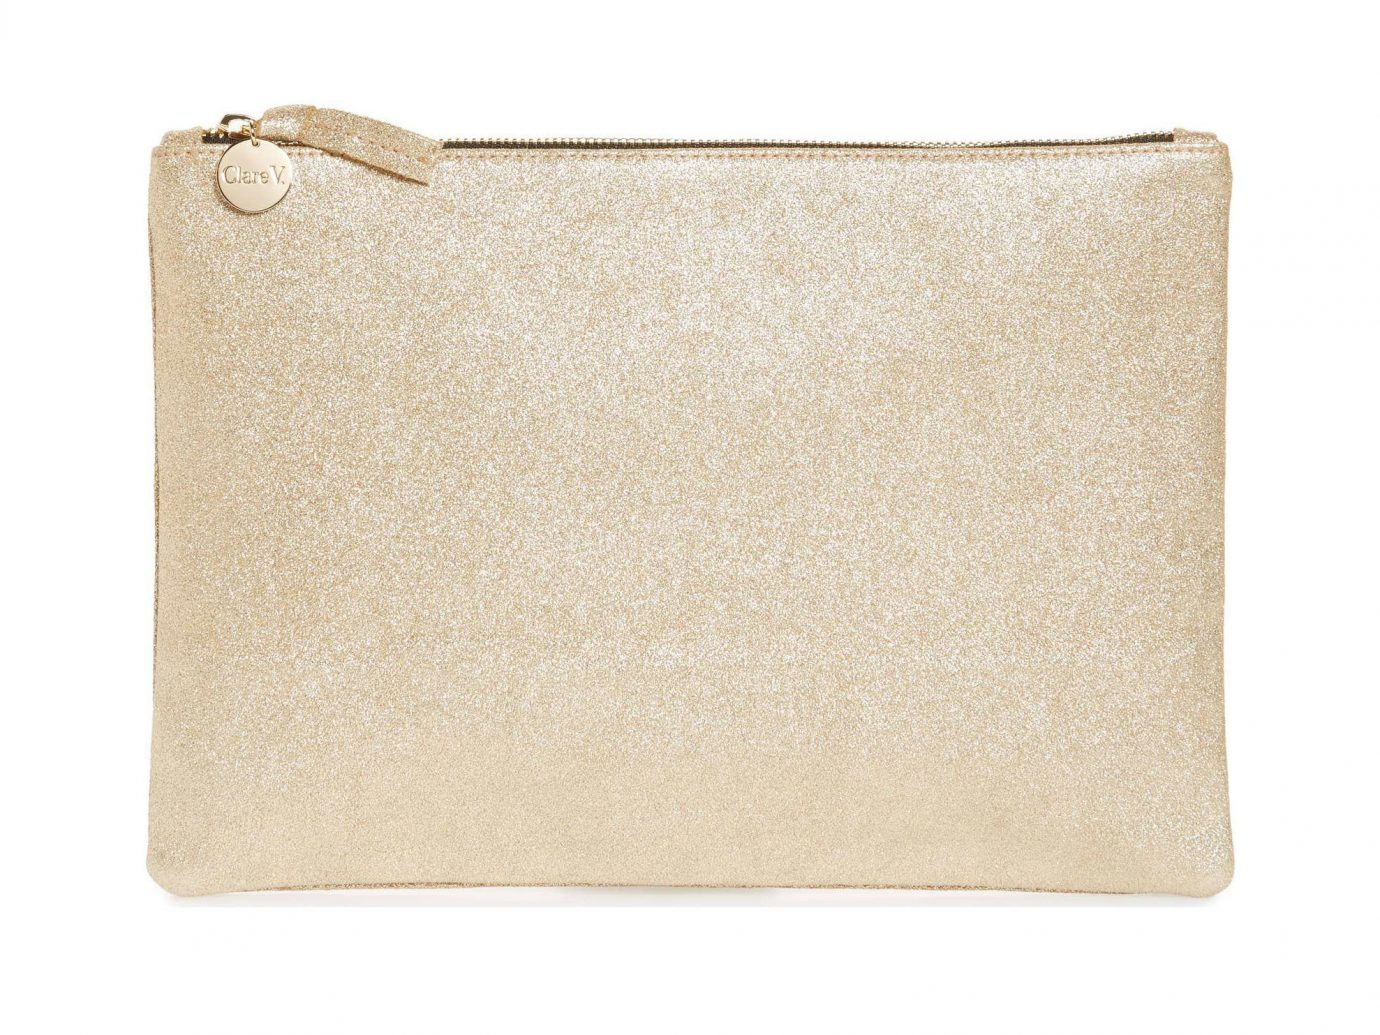 Style + Design Travel Shop beige product coin purse accessory product design handbag rectangle building material